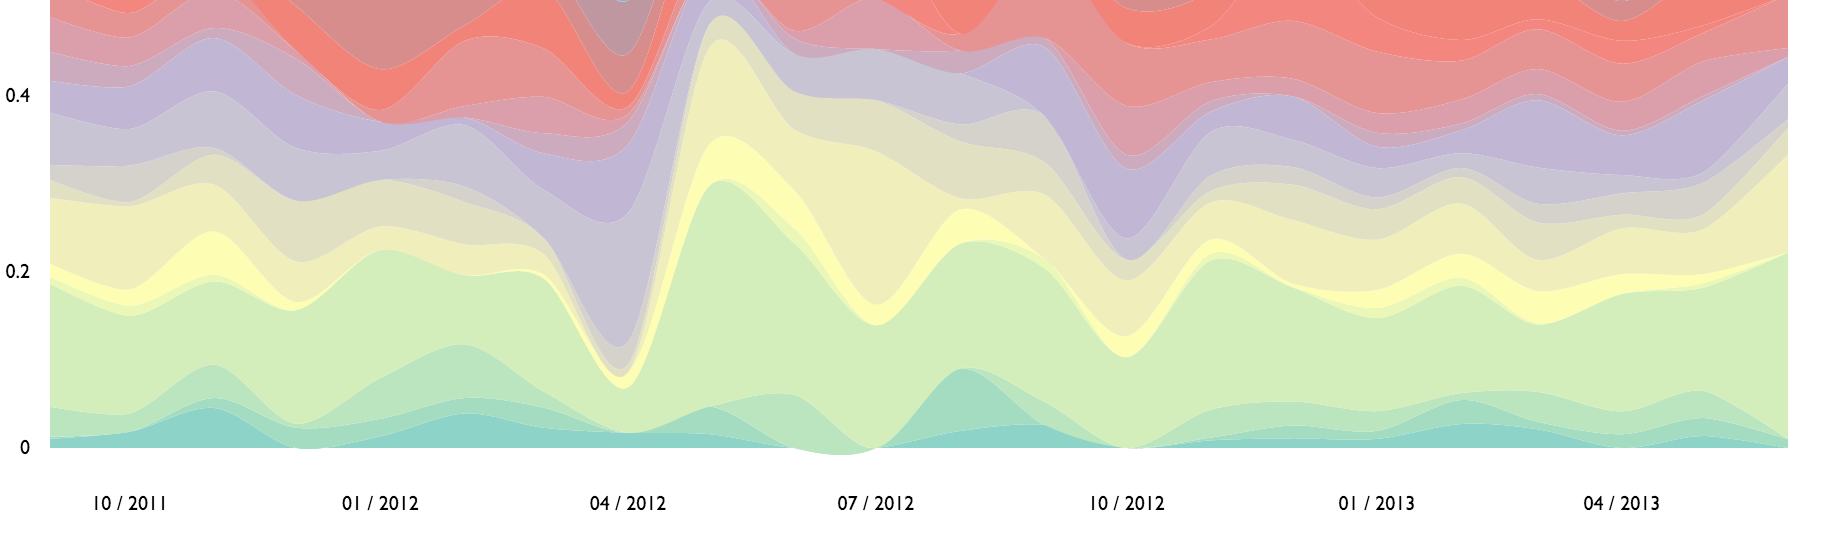 d3/R Streamgraph on White House Petition Data